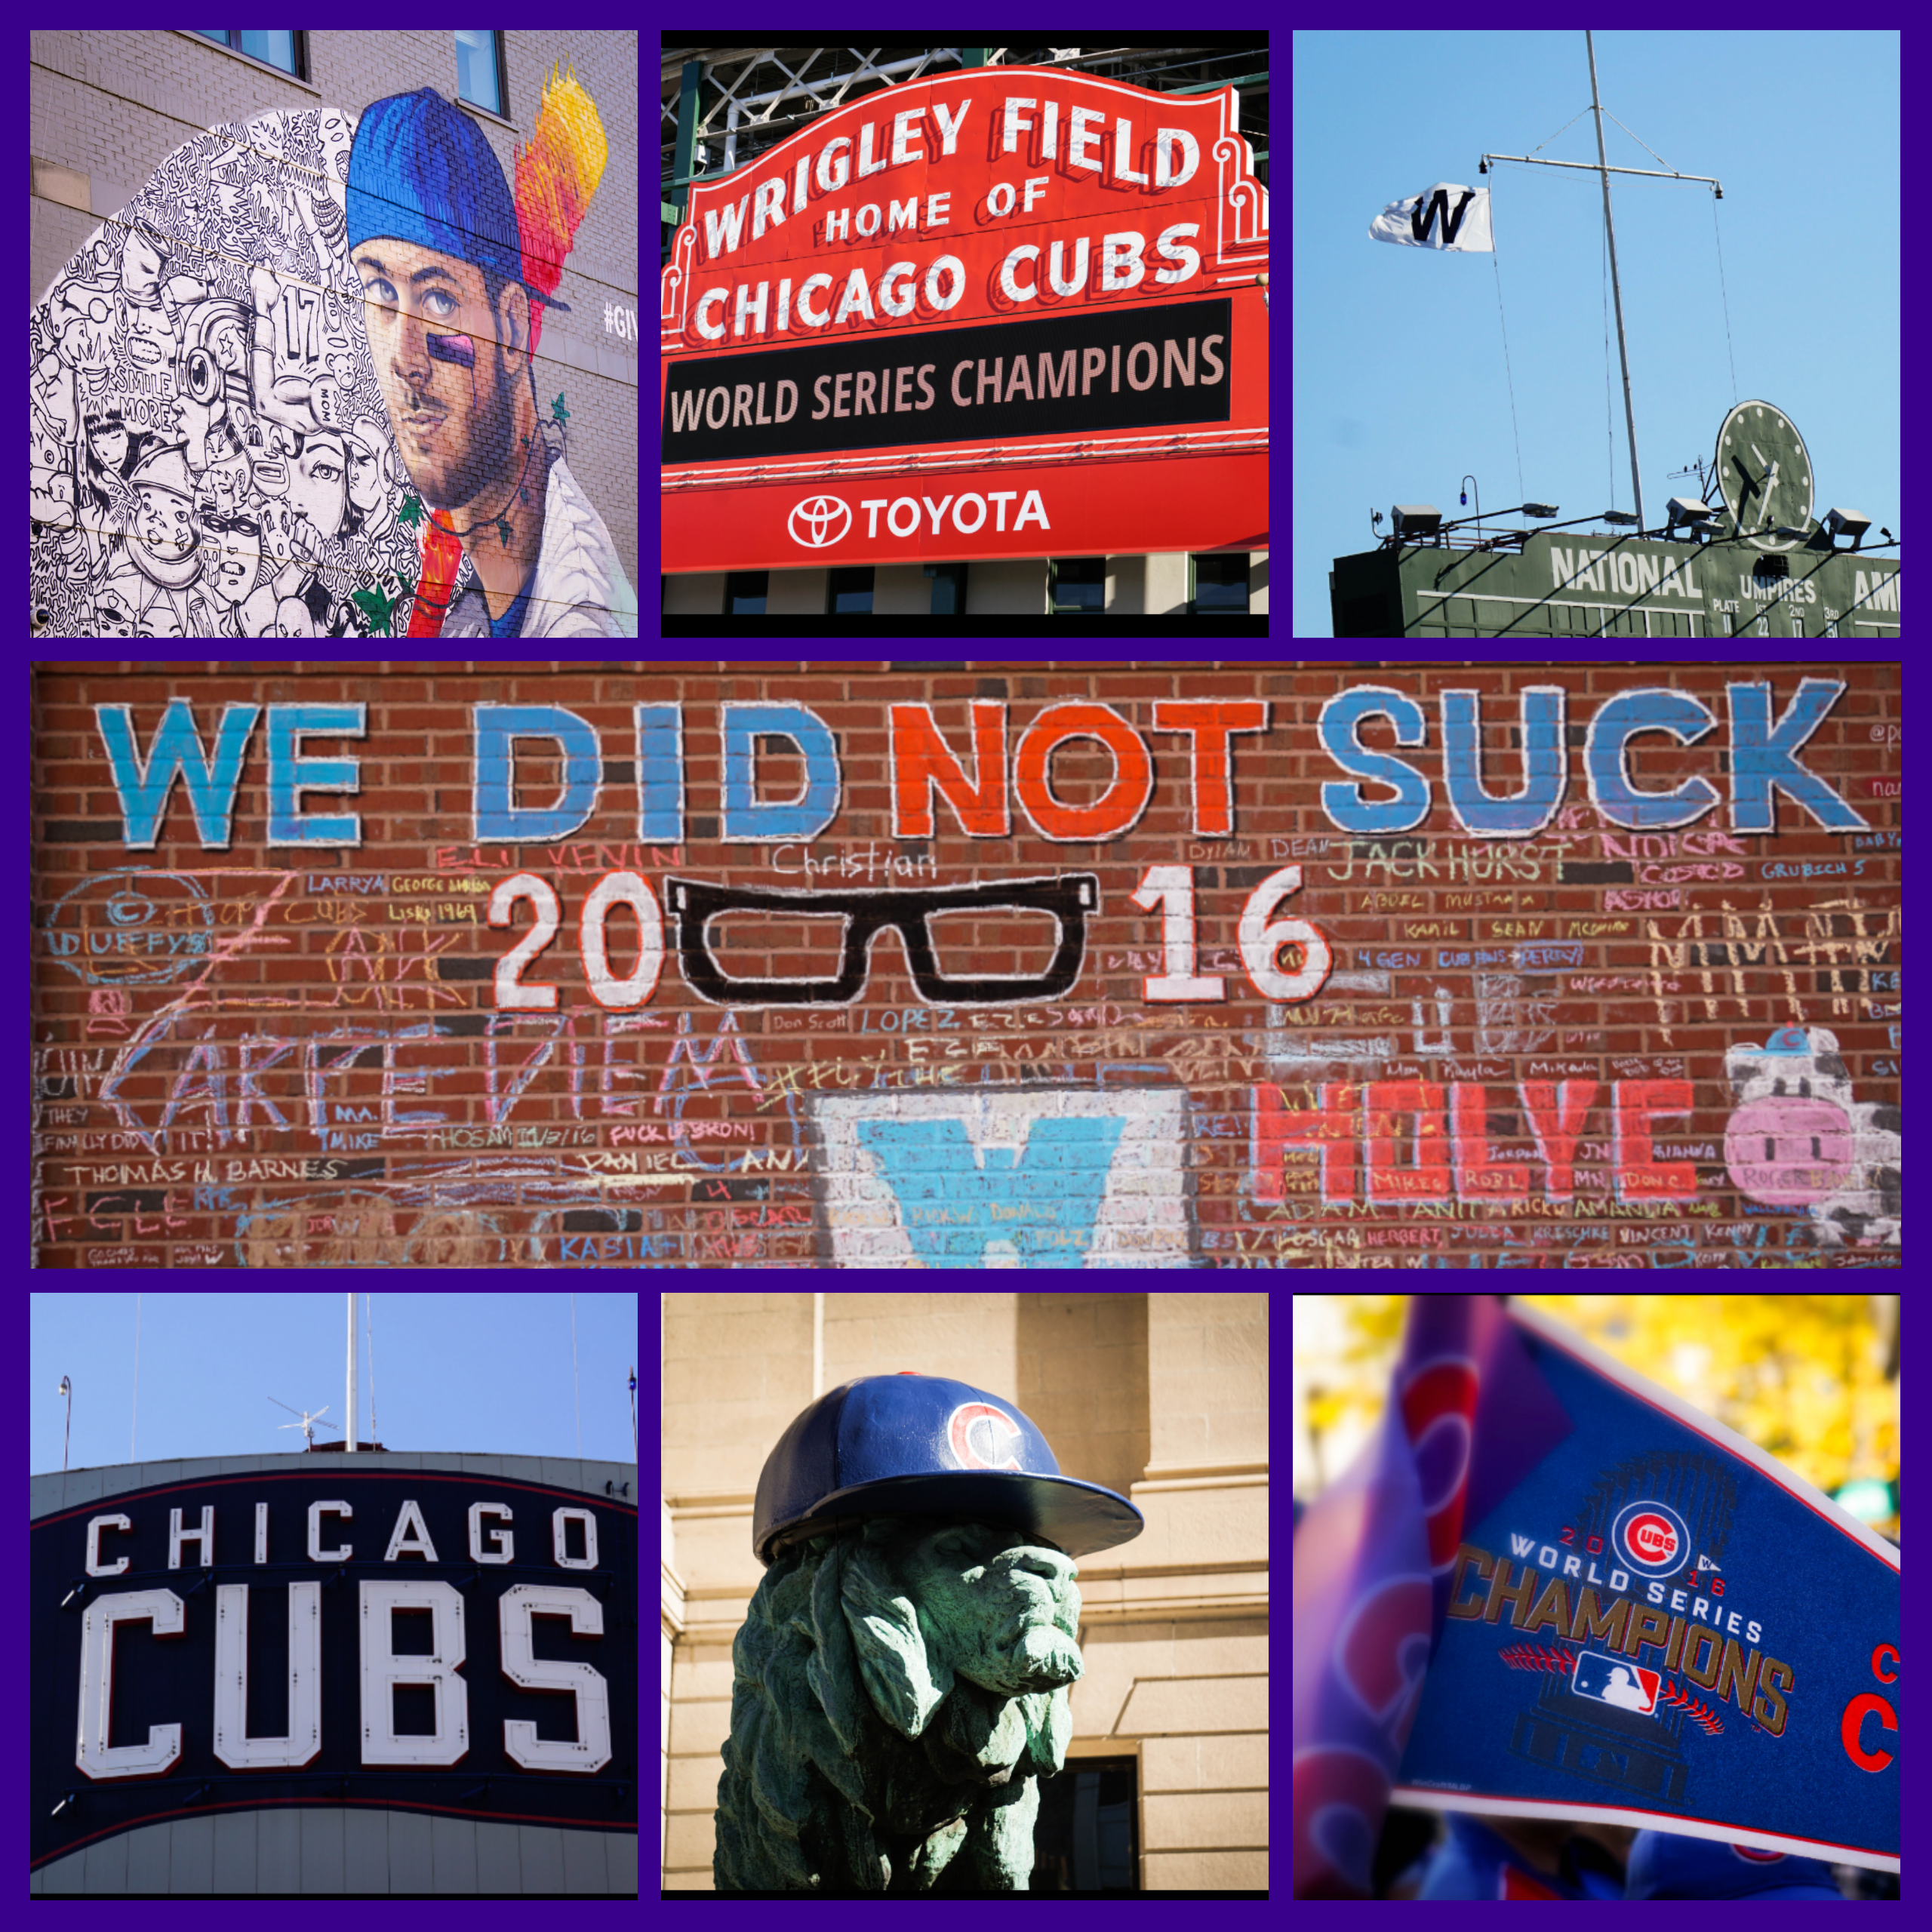 Cubs_Updated_Collage.jpg